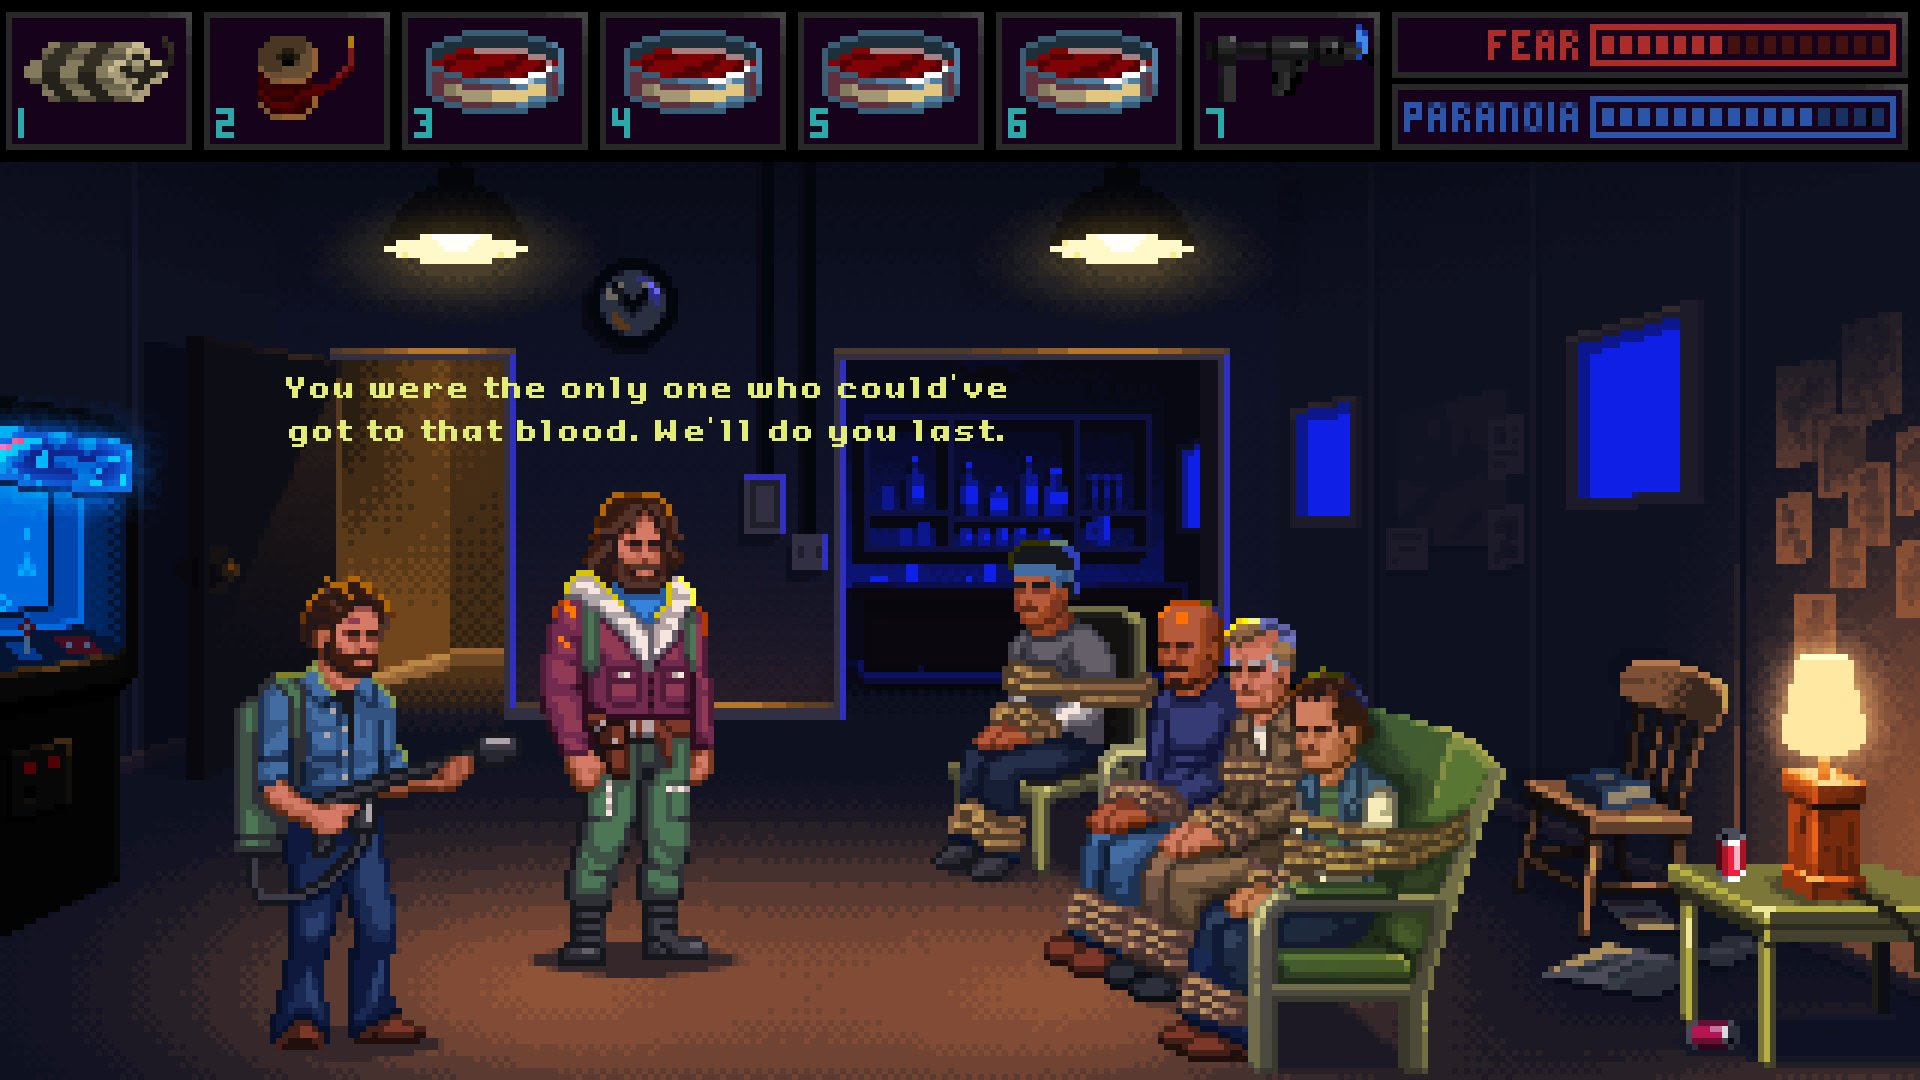 Shame we never got The Thing as a point-and-click adventure screenshot